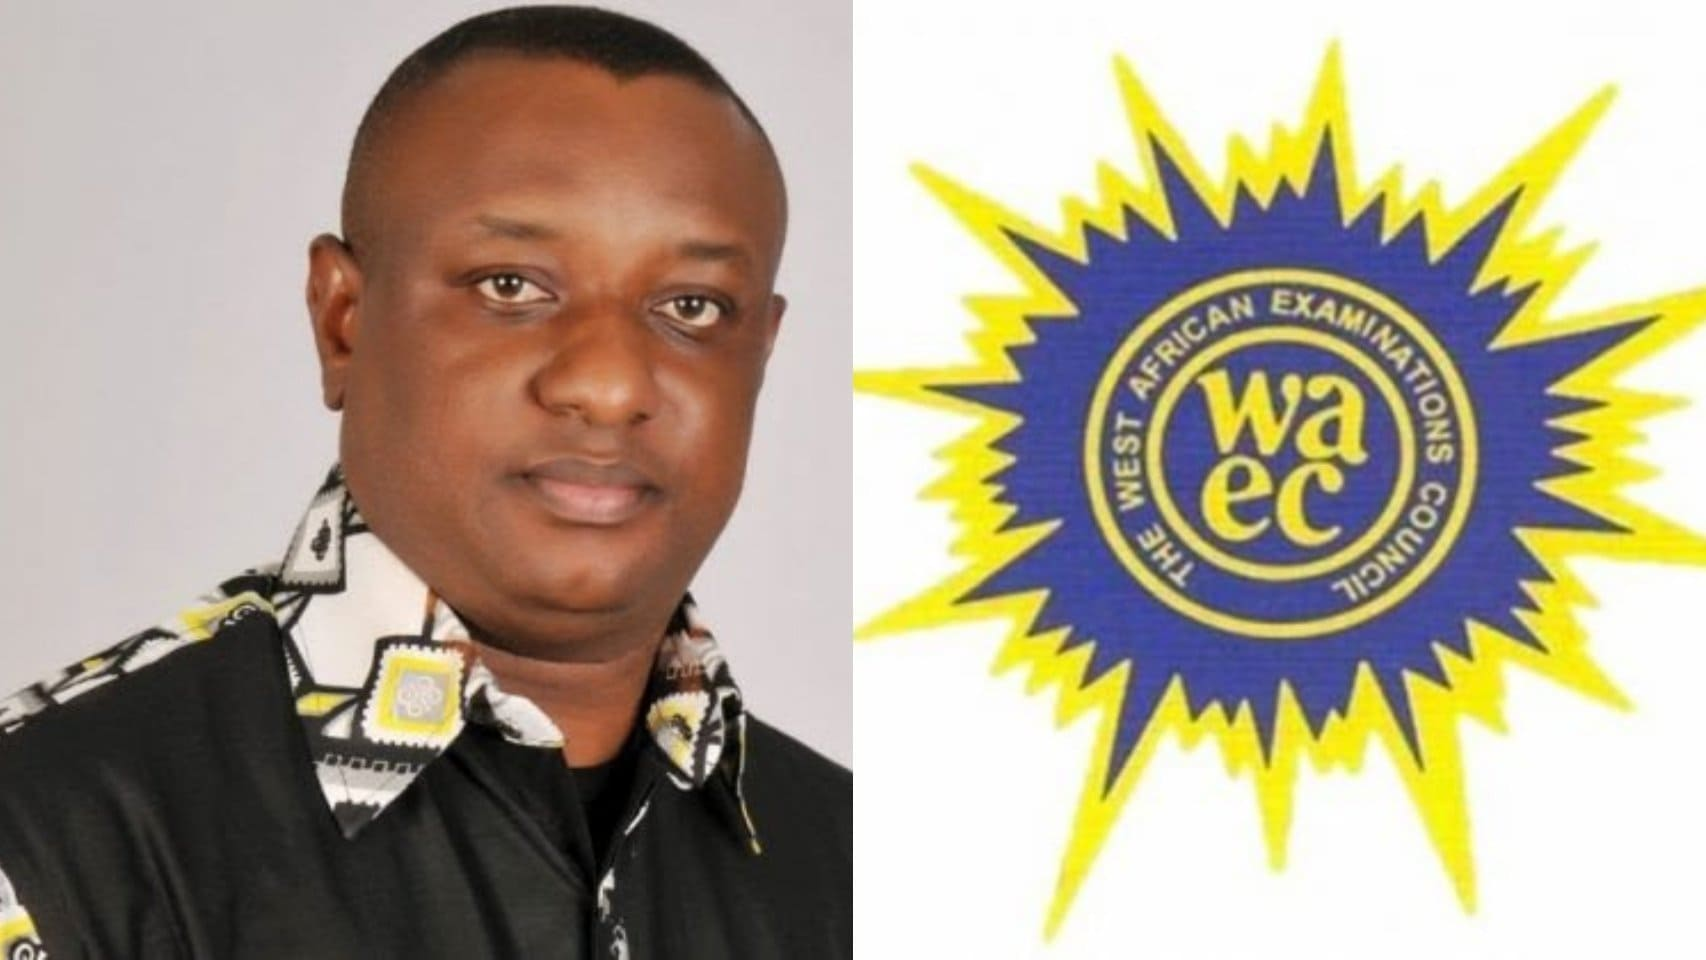 Photo of Nigerians react to Festus Keyamo's WAEC statement